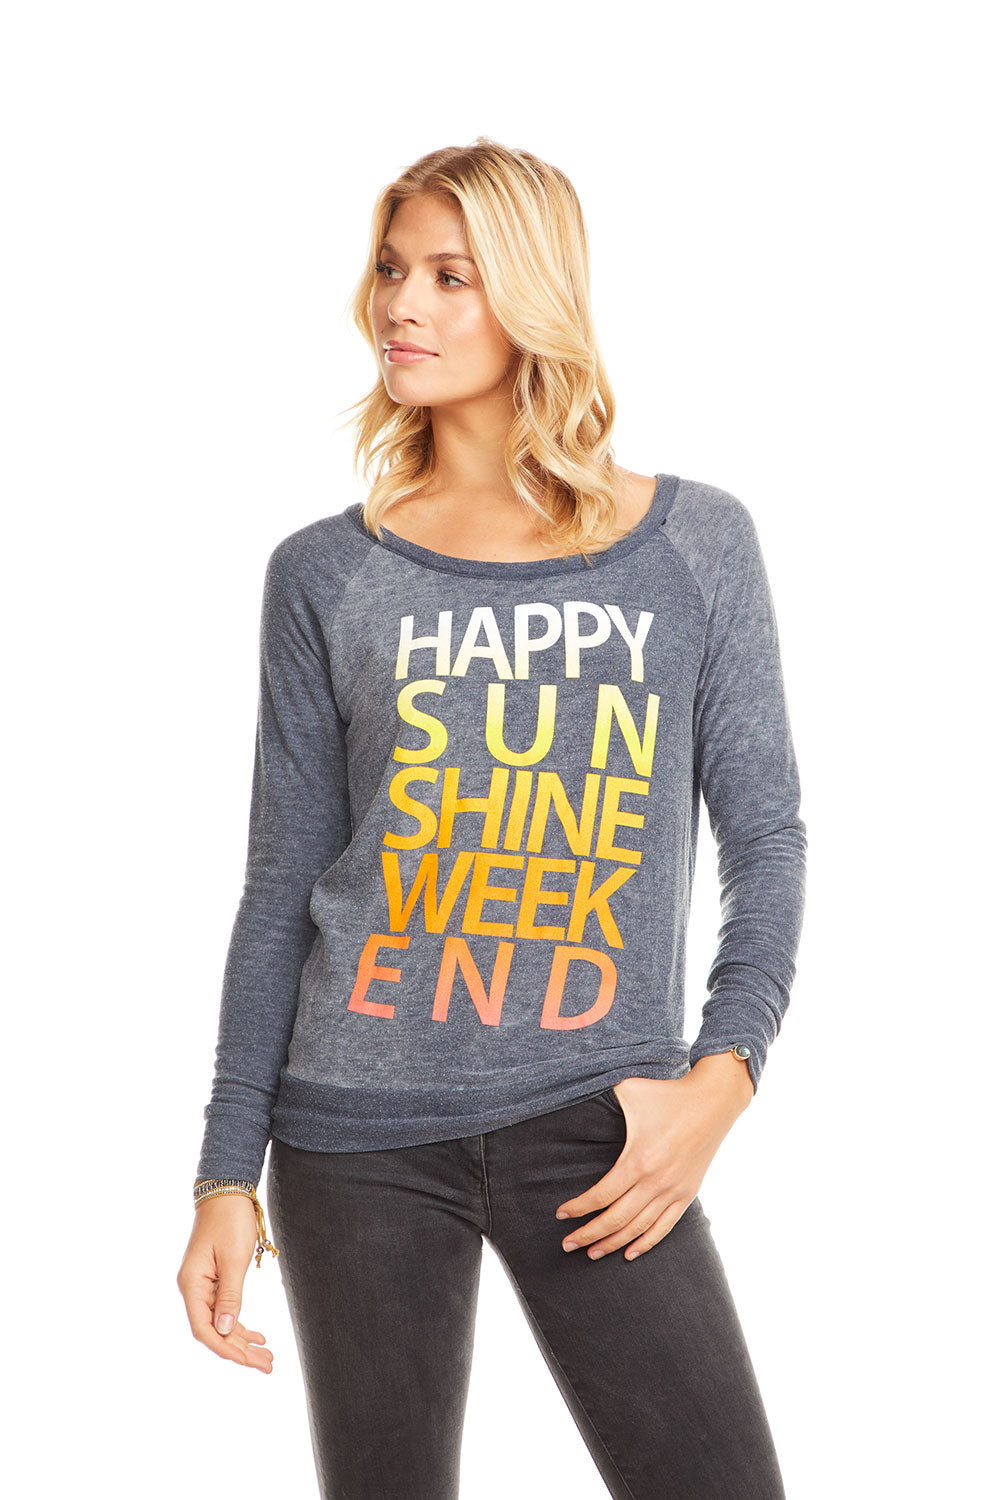 Sunshine Weekend, WOMENS, chaserbrand.com,chaser clothing,chaser apparel,chaser los angeles